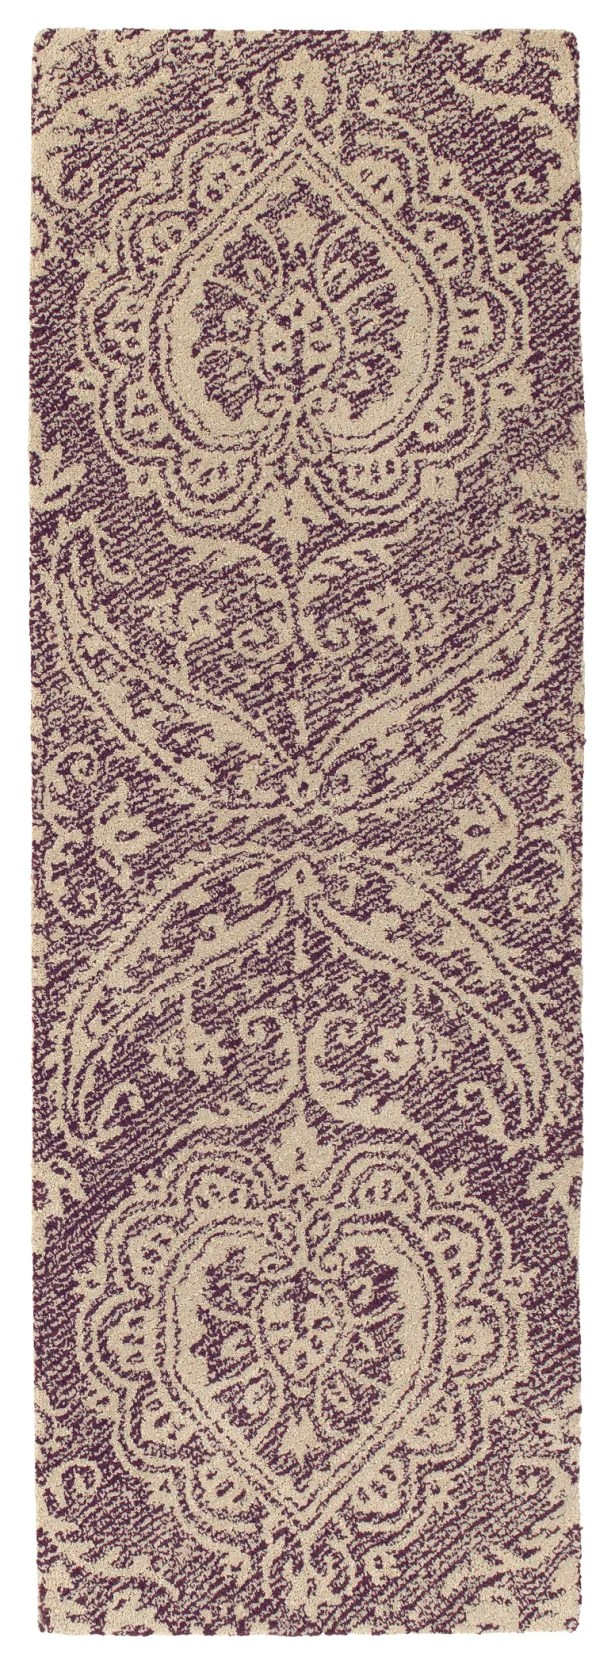 Crown Point Handmade Purple Indoor/Outdoor Area Rug Rug Size: Rectangle 9' x 12'